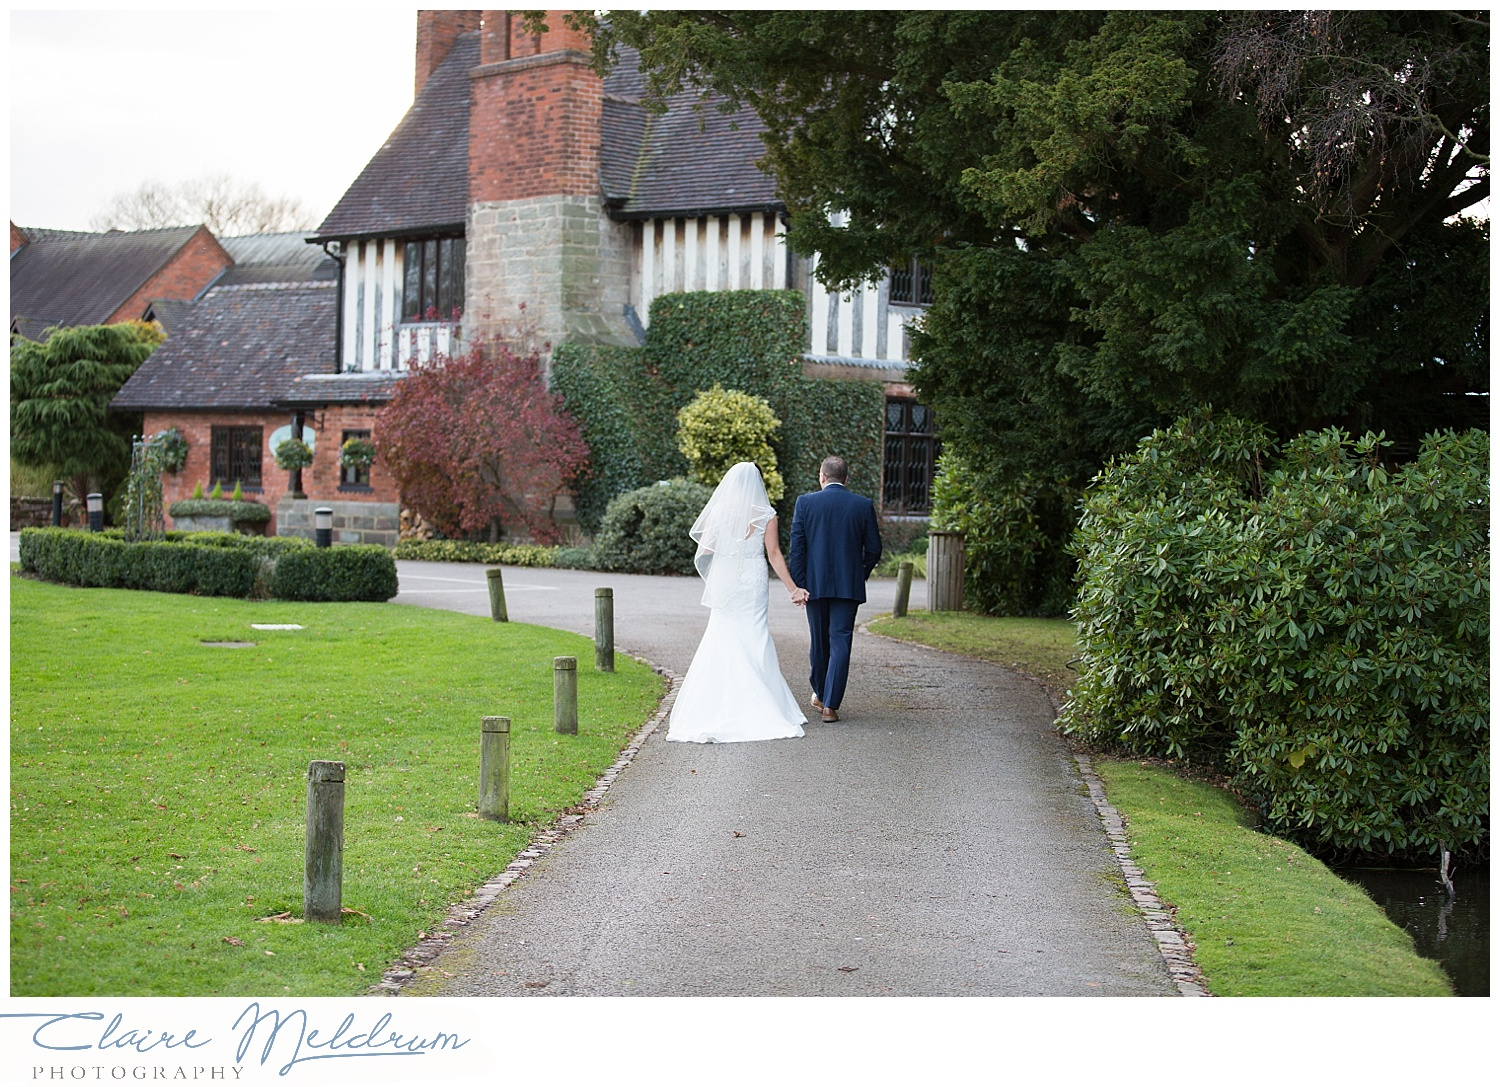 The Moat House Acton Trussell, Claire Meldrum Photography